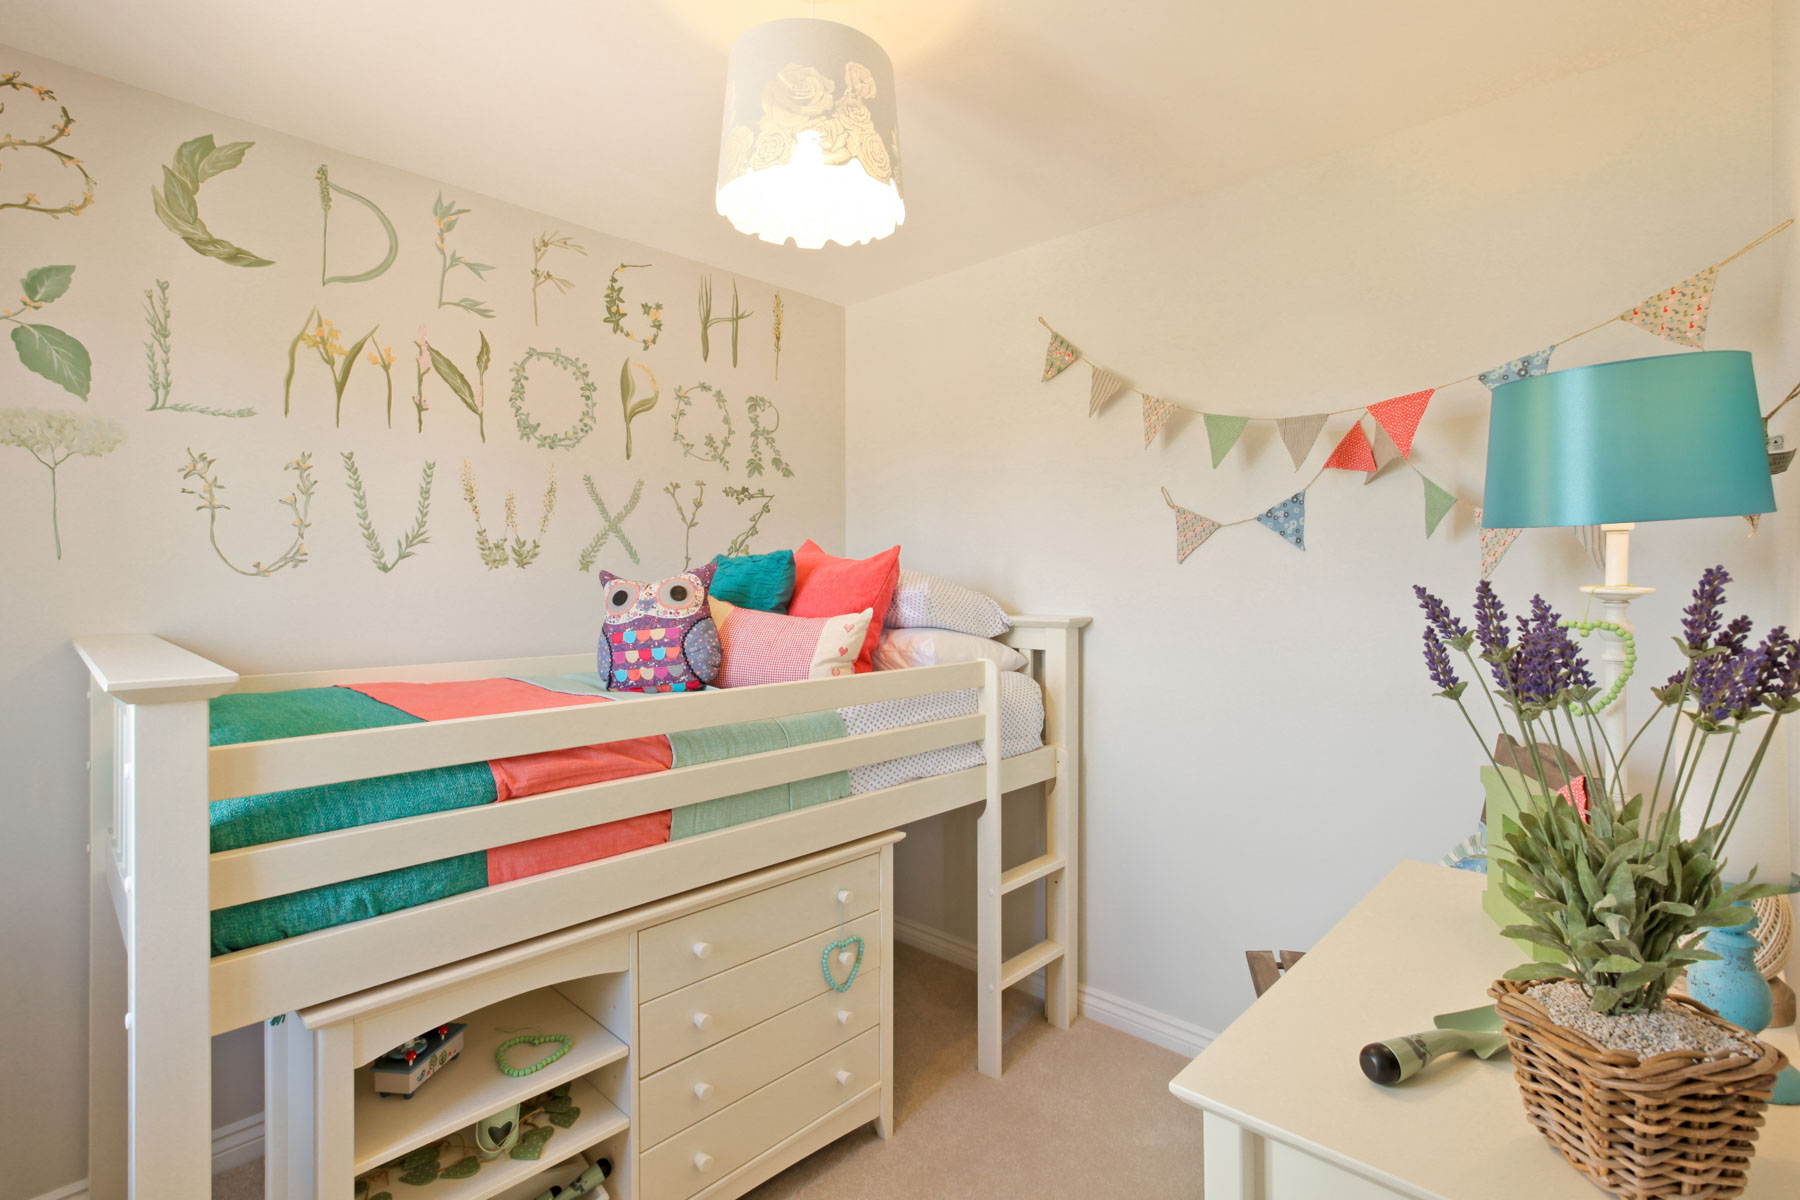 Downham kids bedroom 2